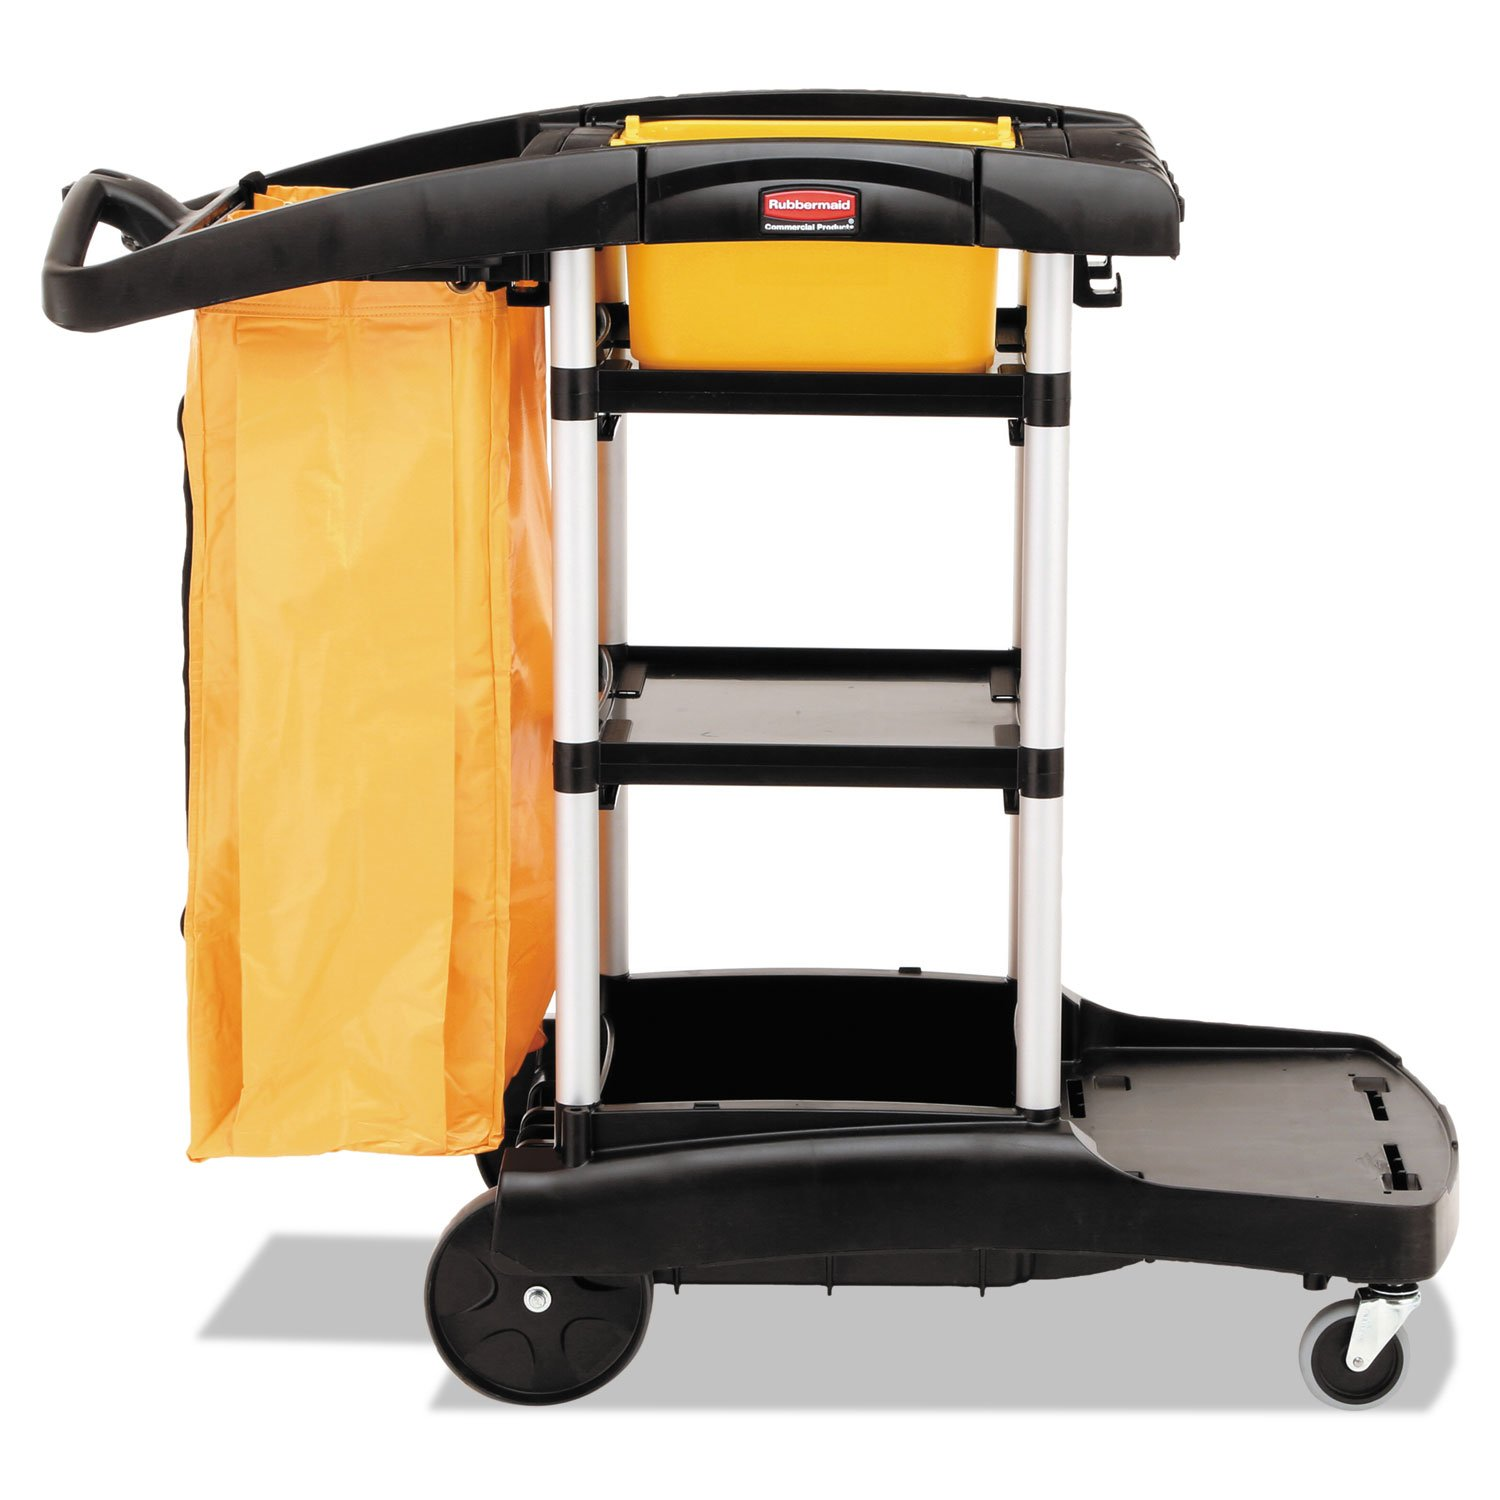 Rubbermaid Commercial Products Cleaning Cart,High Cap,4 Casters,21-3/4''x49-3/4''x38-3/10''